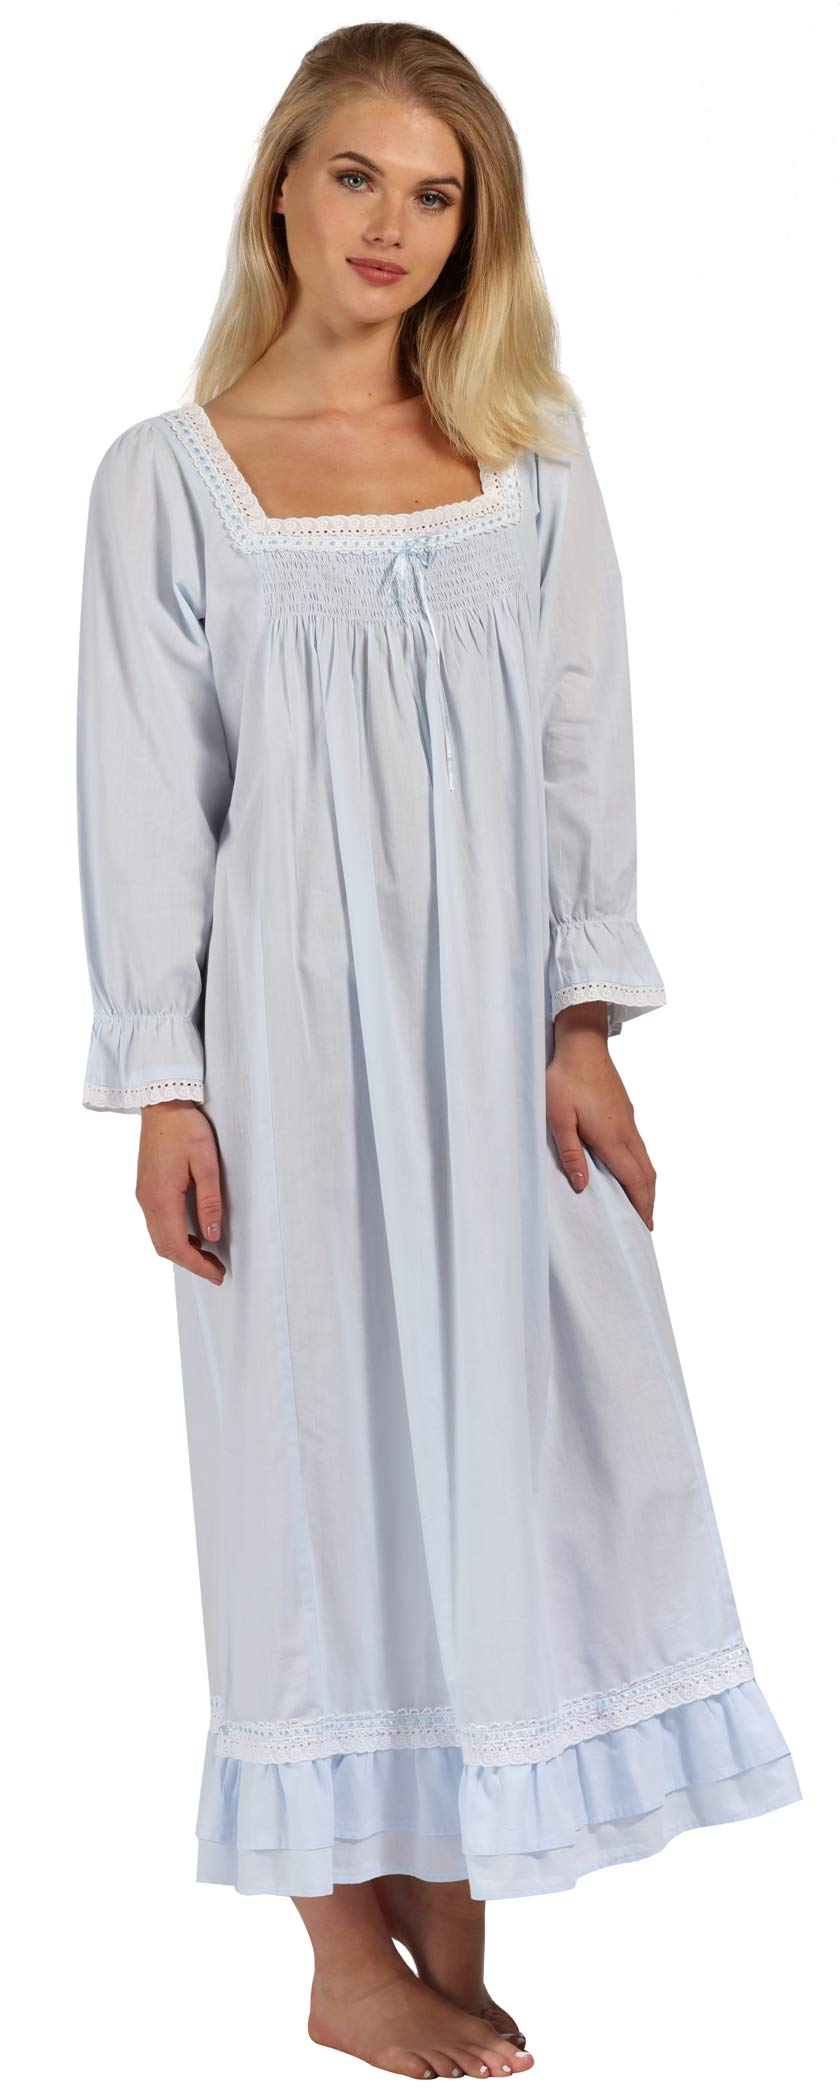 The 1 for U Martha Nightgown 100% Cotton Victorian Style - Sizes XS - 3X … (XL, Blue) by The 1 for U